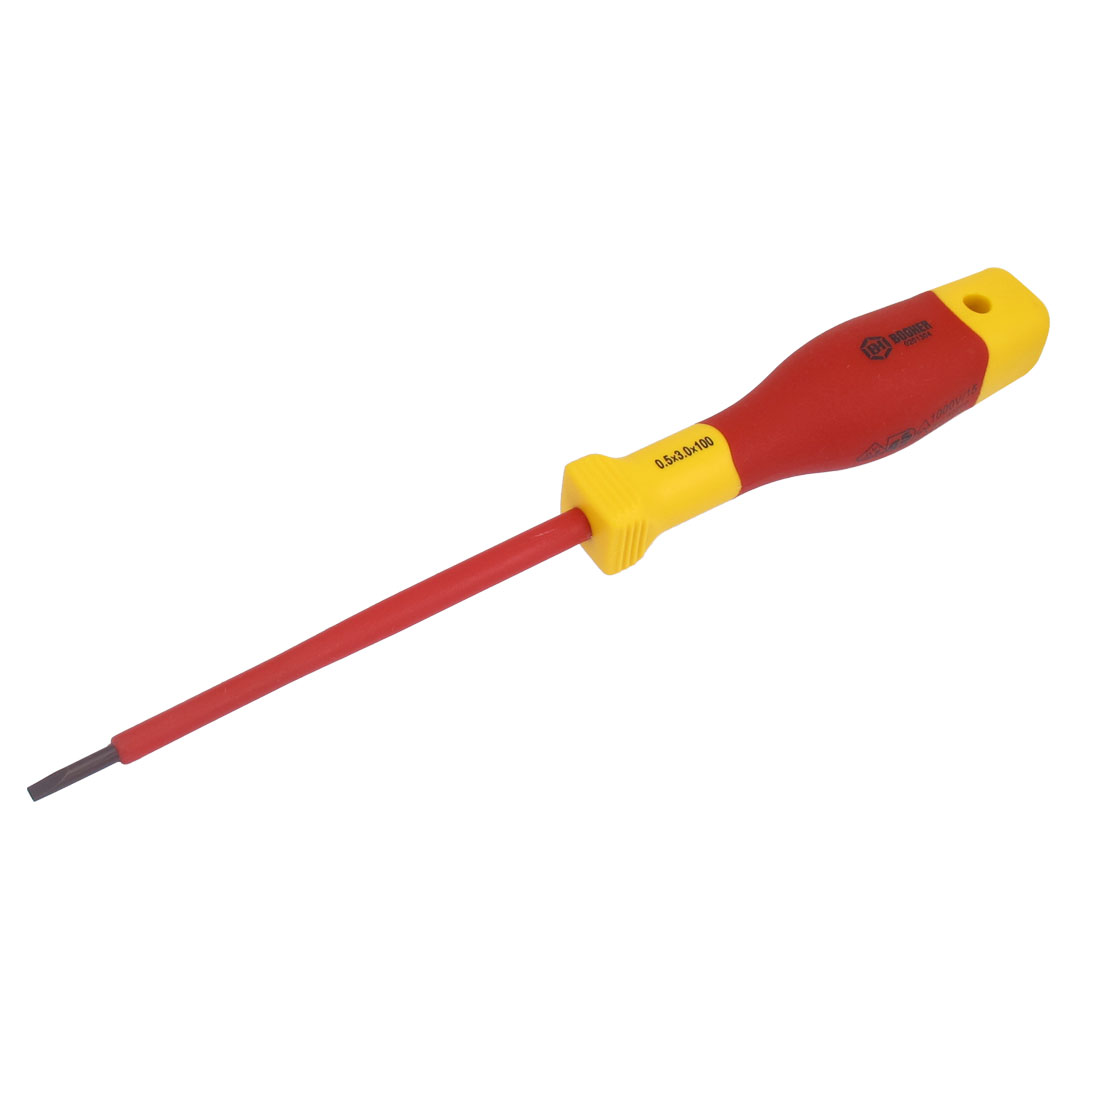 BOOHER 1000V 3mm Tip Width VDE Insulated Slotted Screwdriver